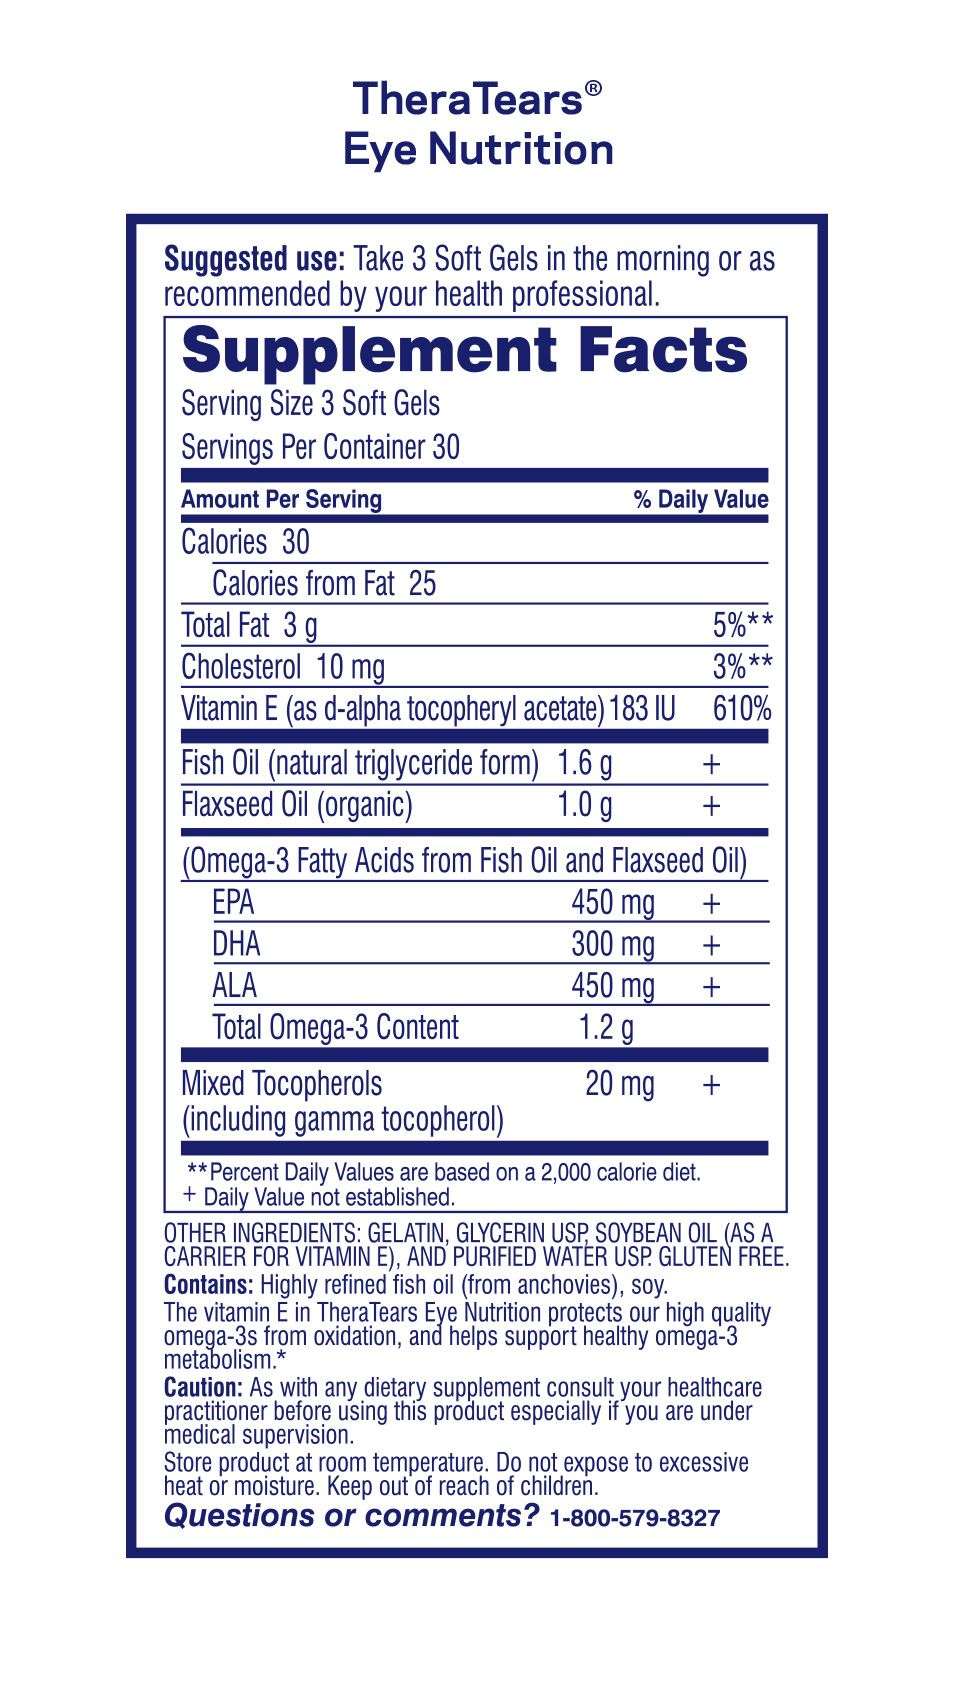 TheraTears Nutrition Supplemental Fact